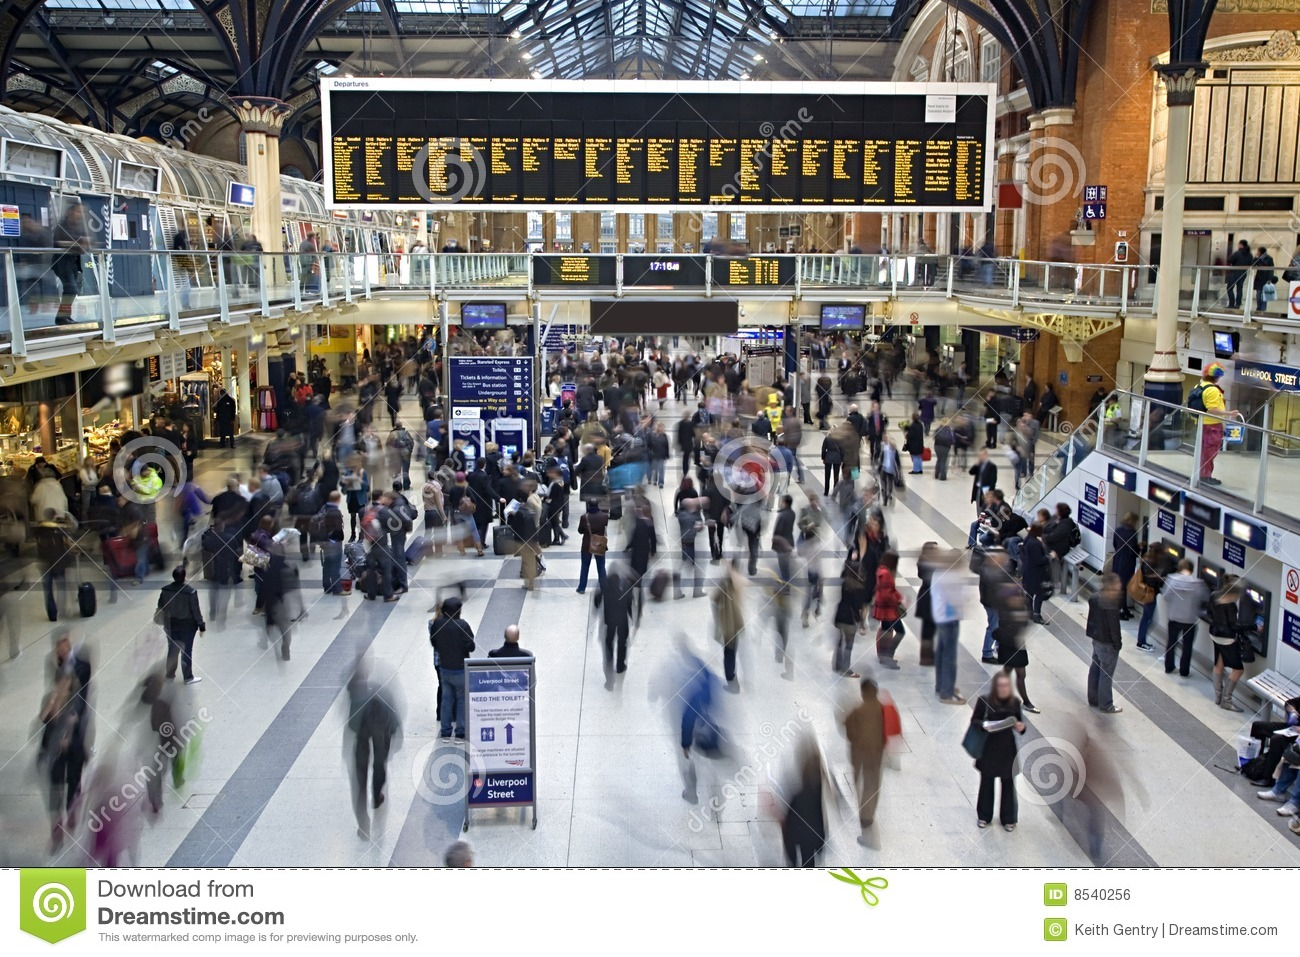 Liverpool Street station at rush hour